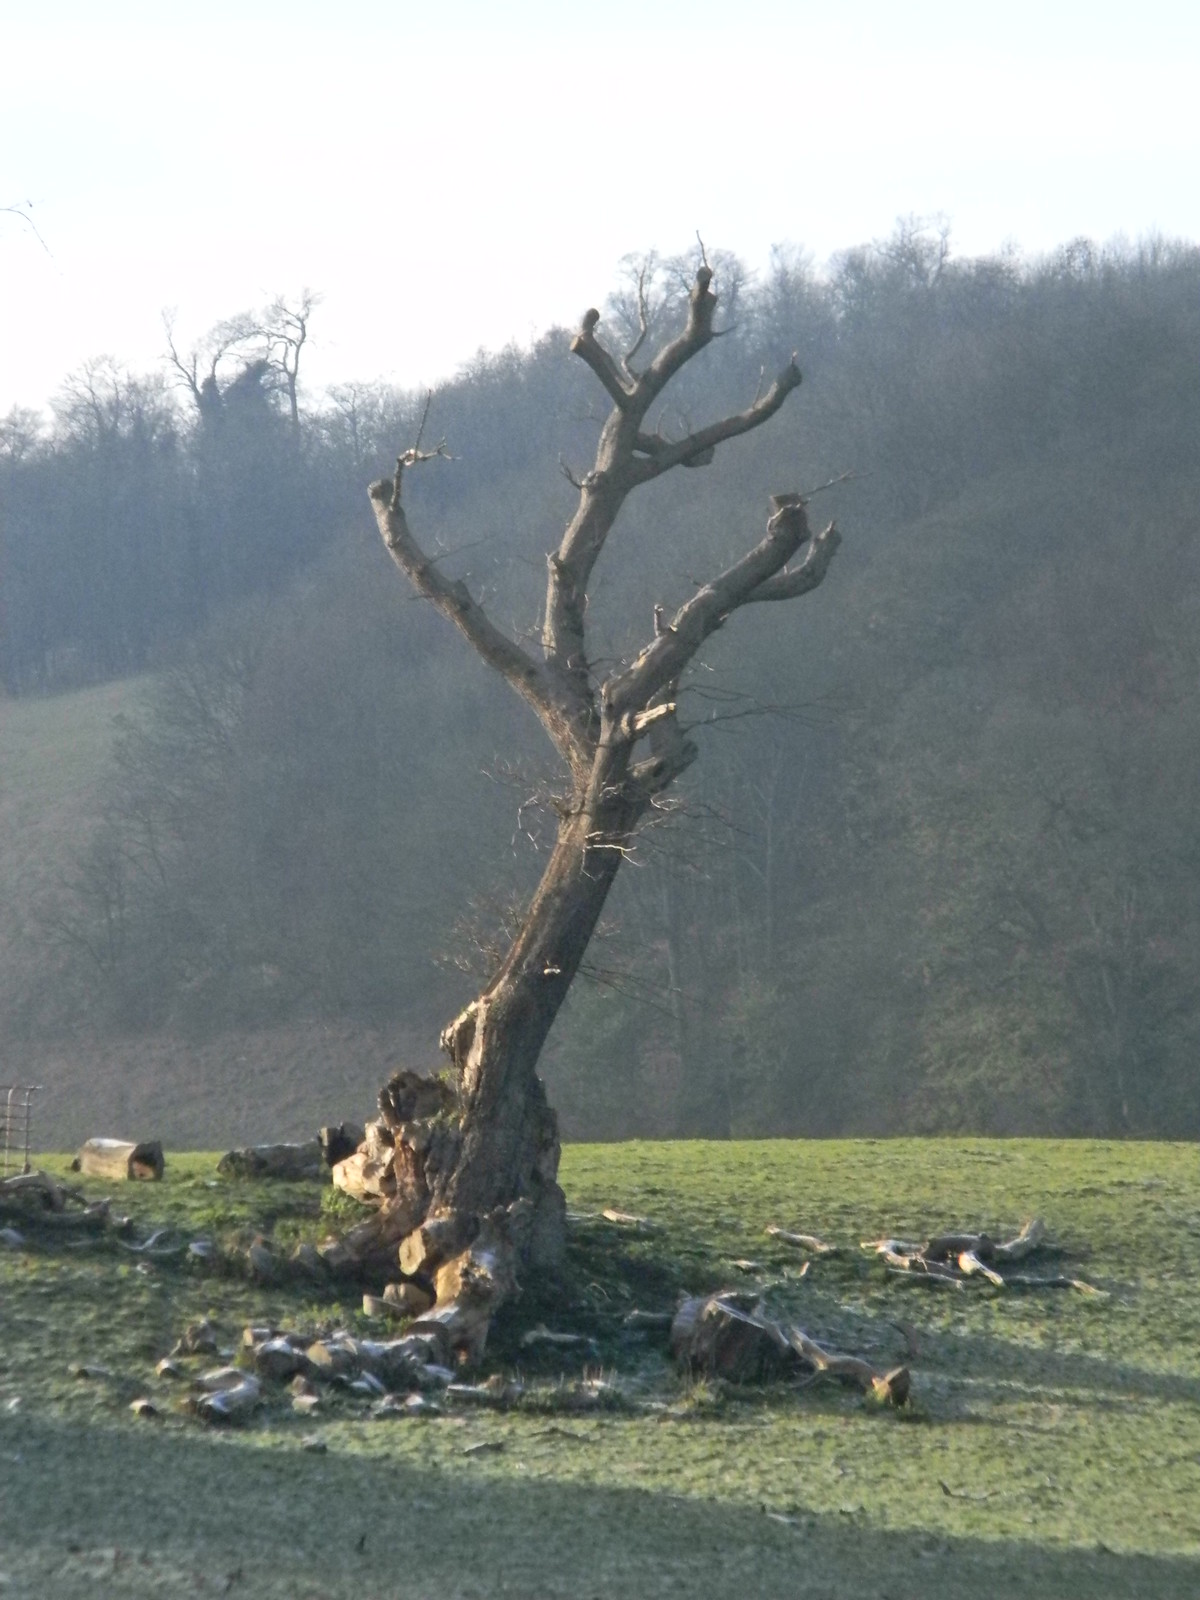 Distinctive stump Just needs a vulture sitting on it. Merstham to Tadworth